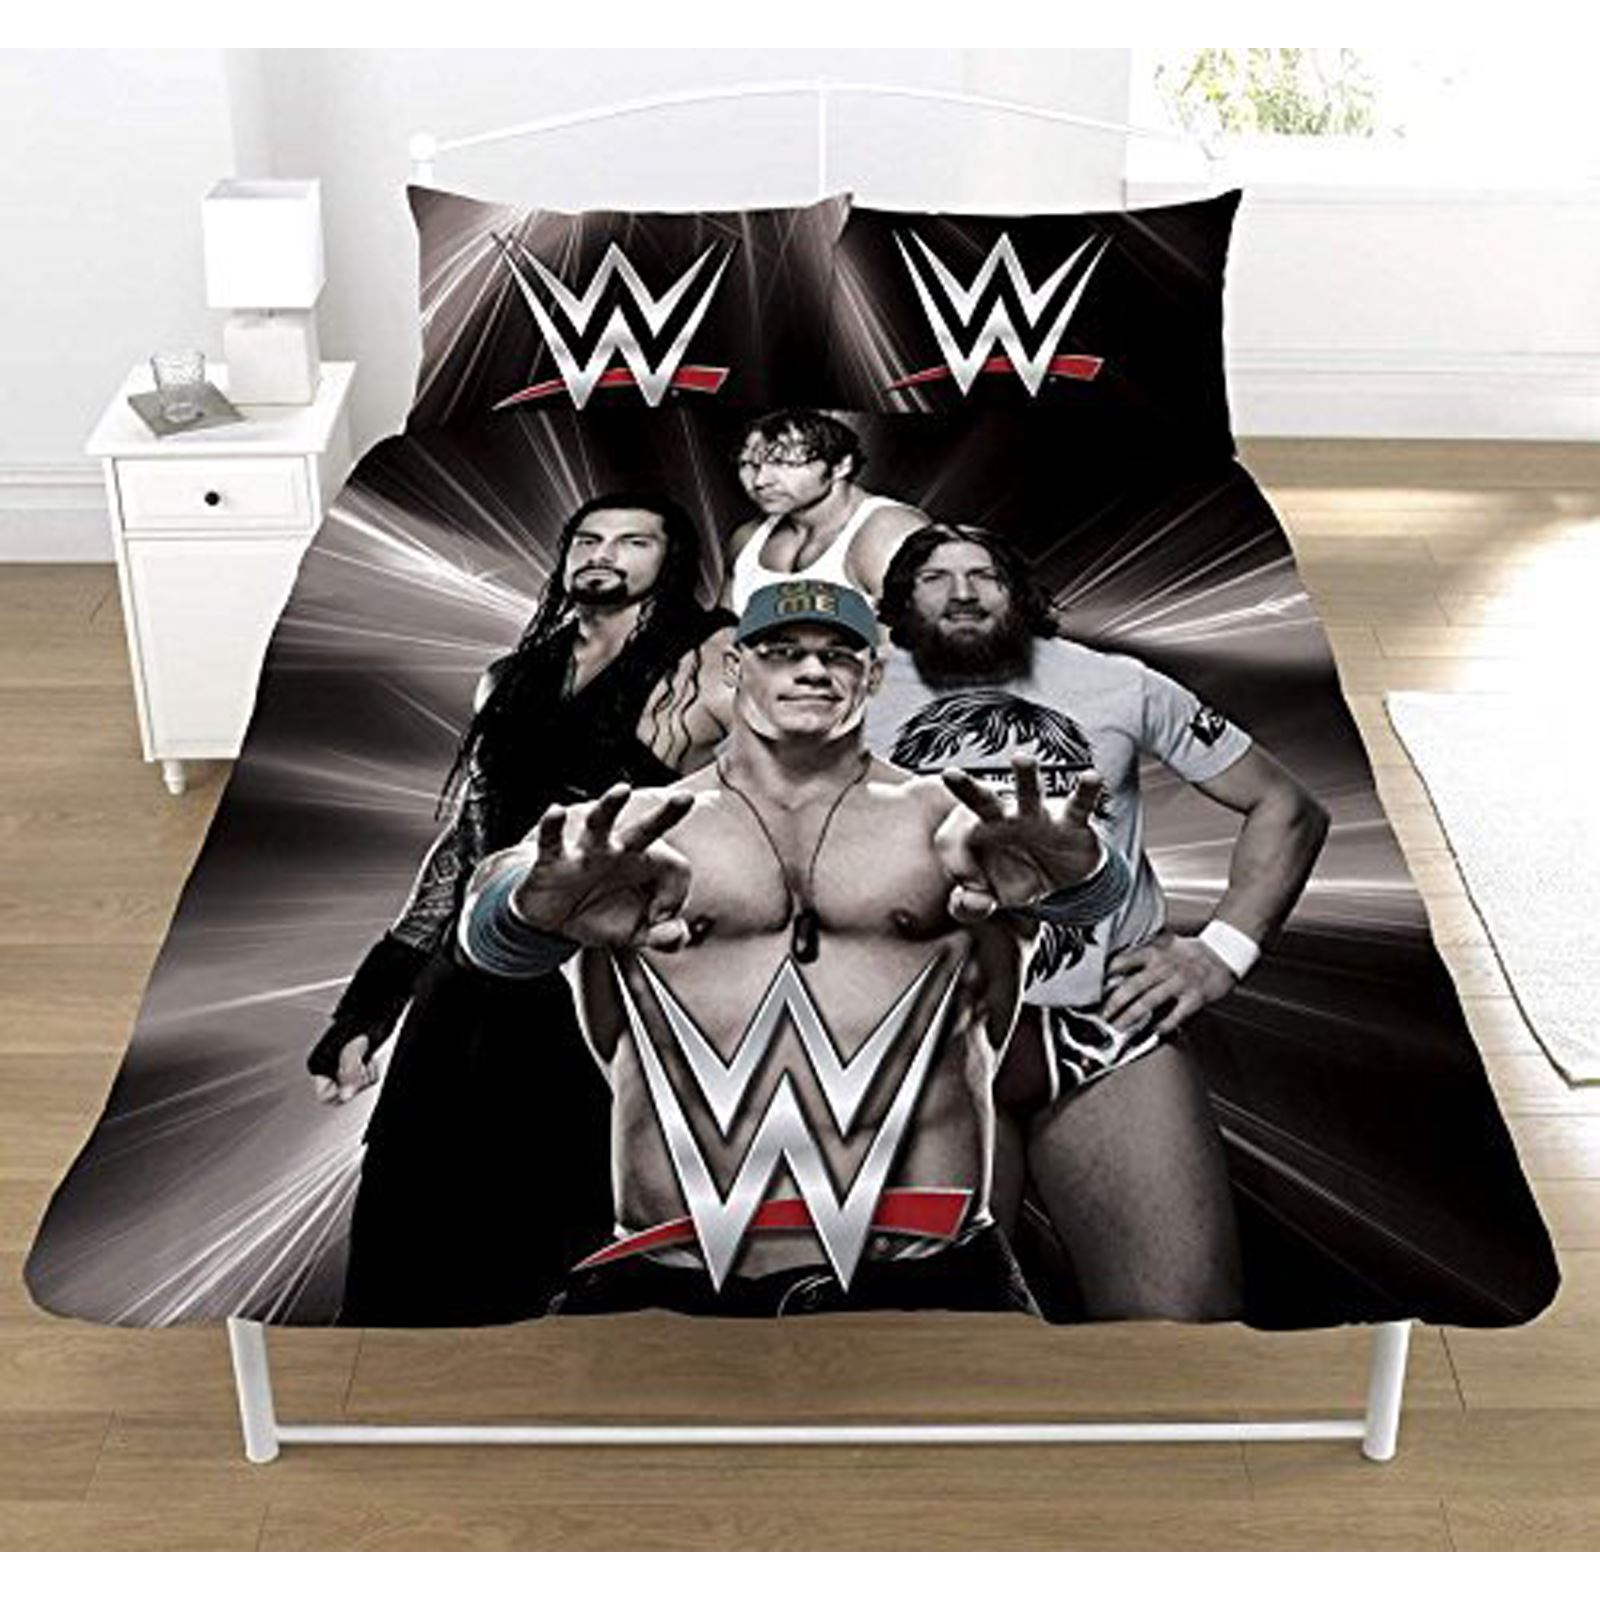 what are wwe chairs made of roman chair abs superstars double doona cover and pillowcase bedding set